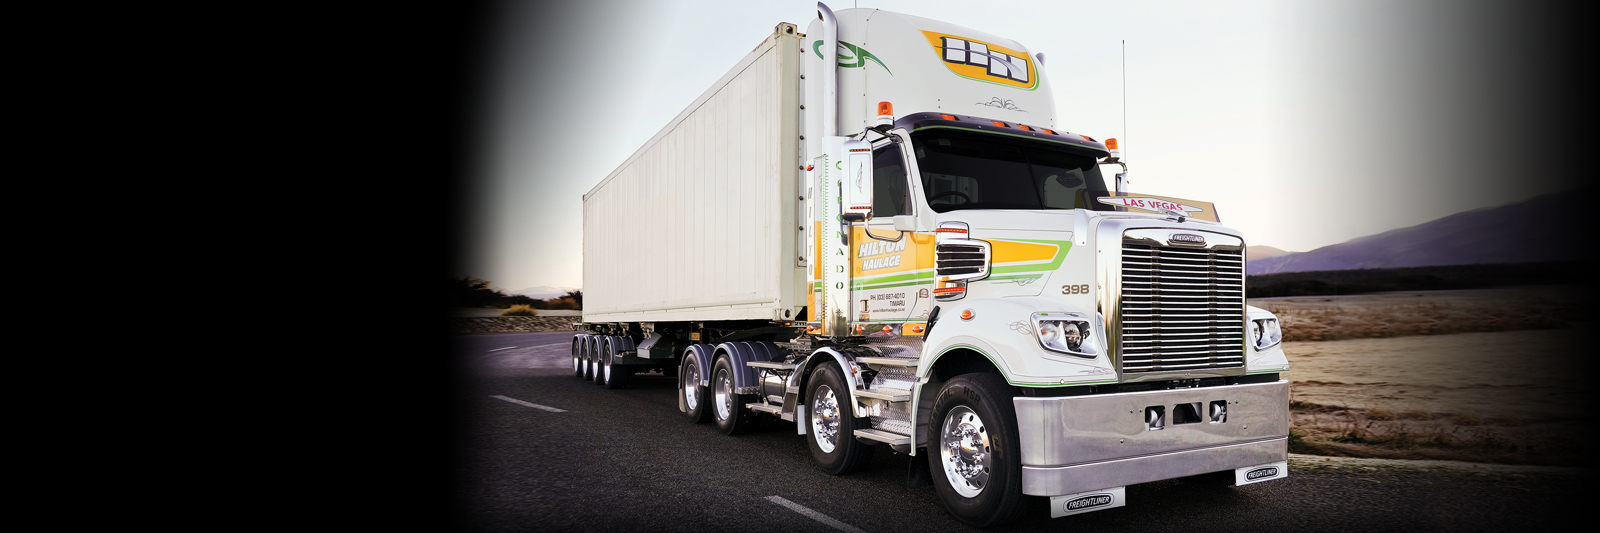 daimler truck financial freightliner business tools. Cars Review. Best American Auto & Cars Review